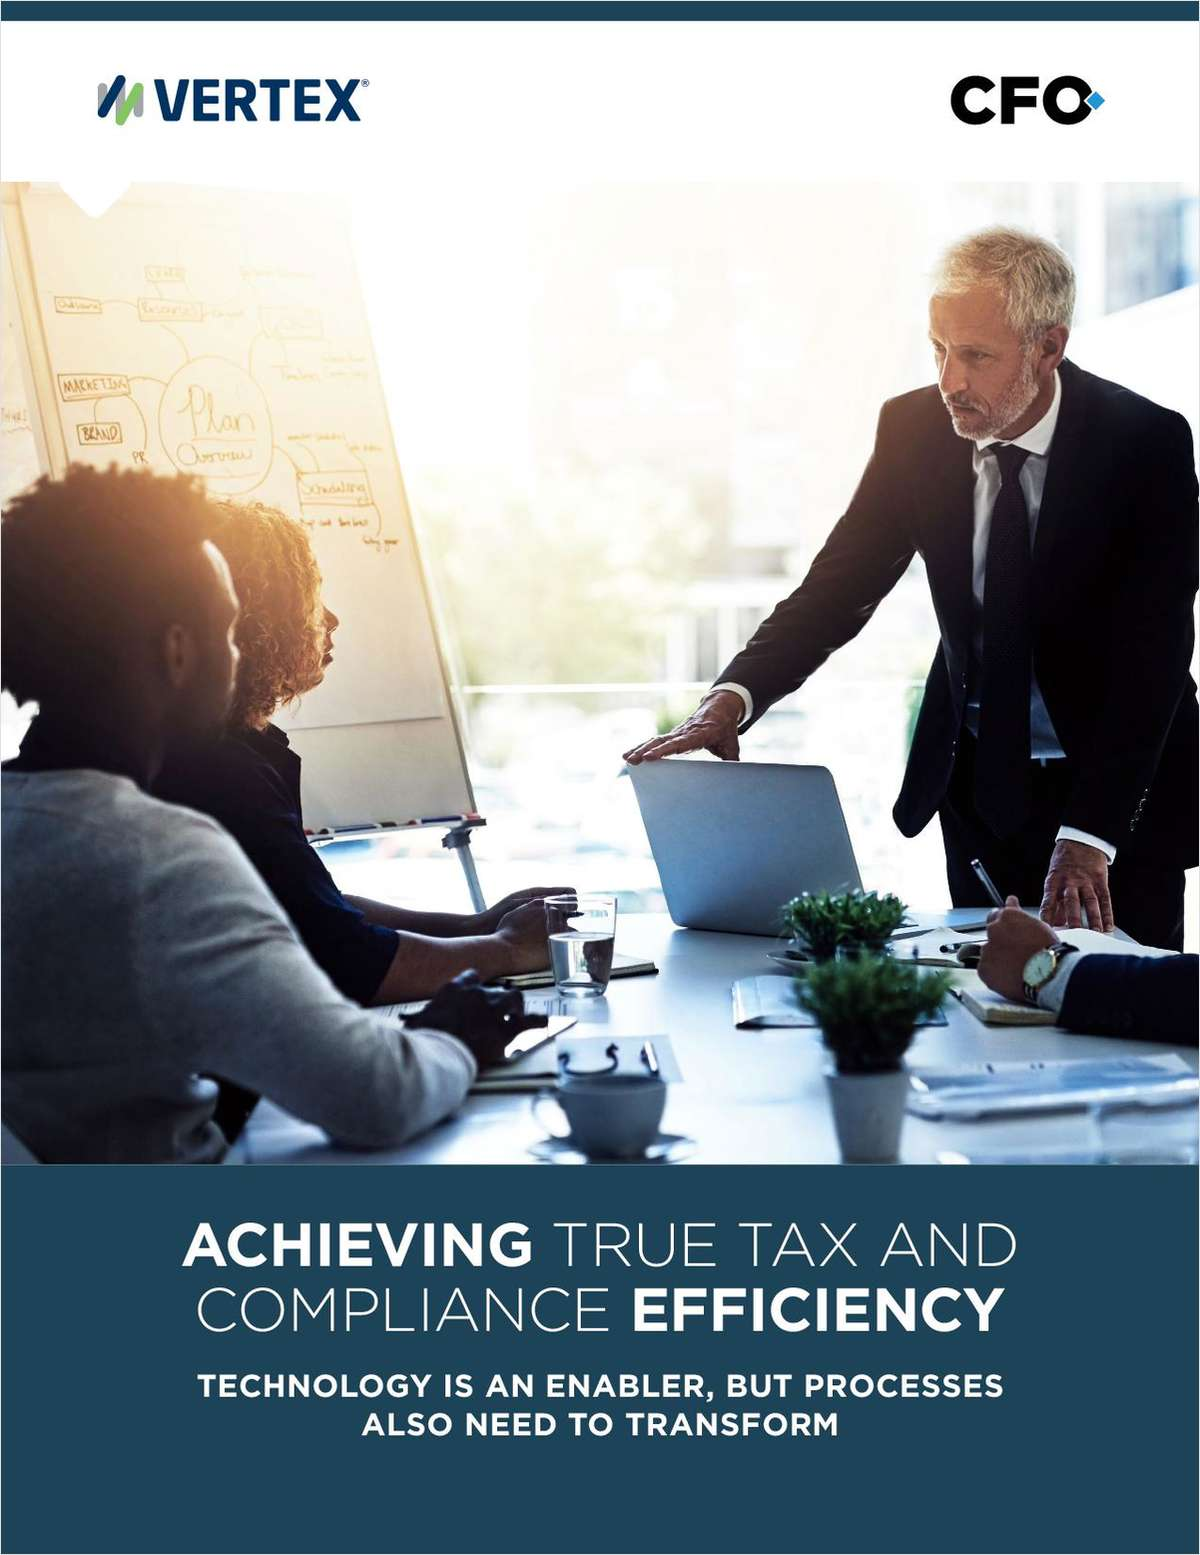 ACHIEVING TRUE TAX AND COMPLIANCE EFFICIENCY